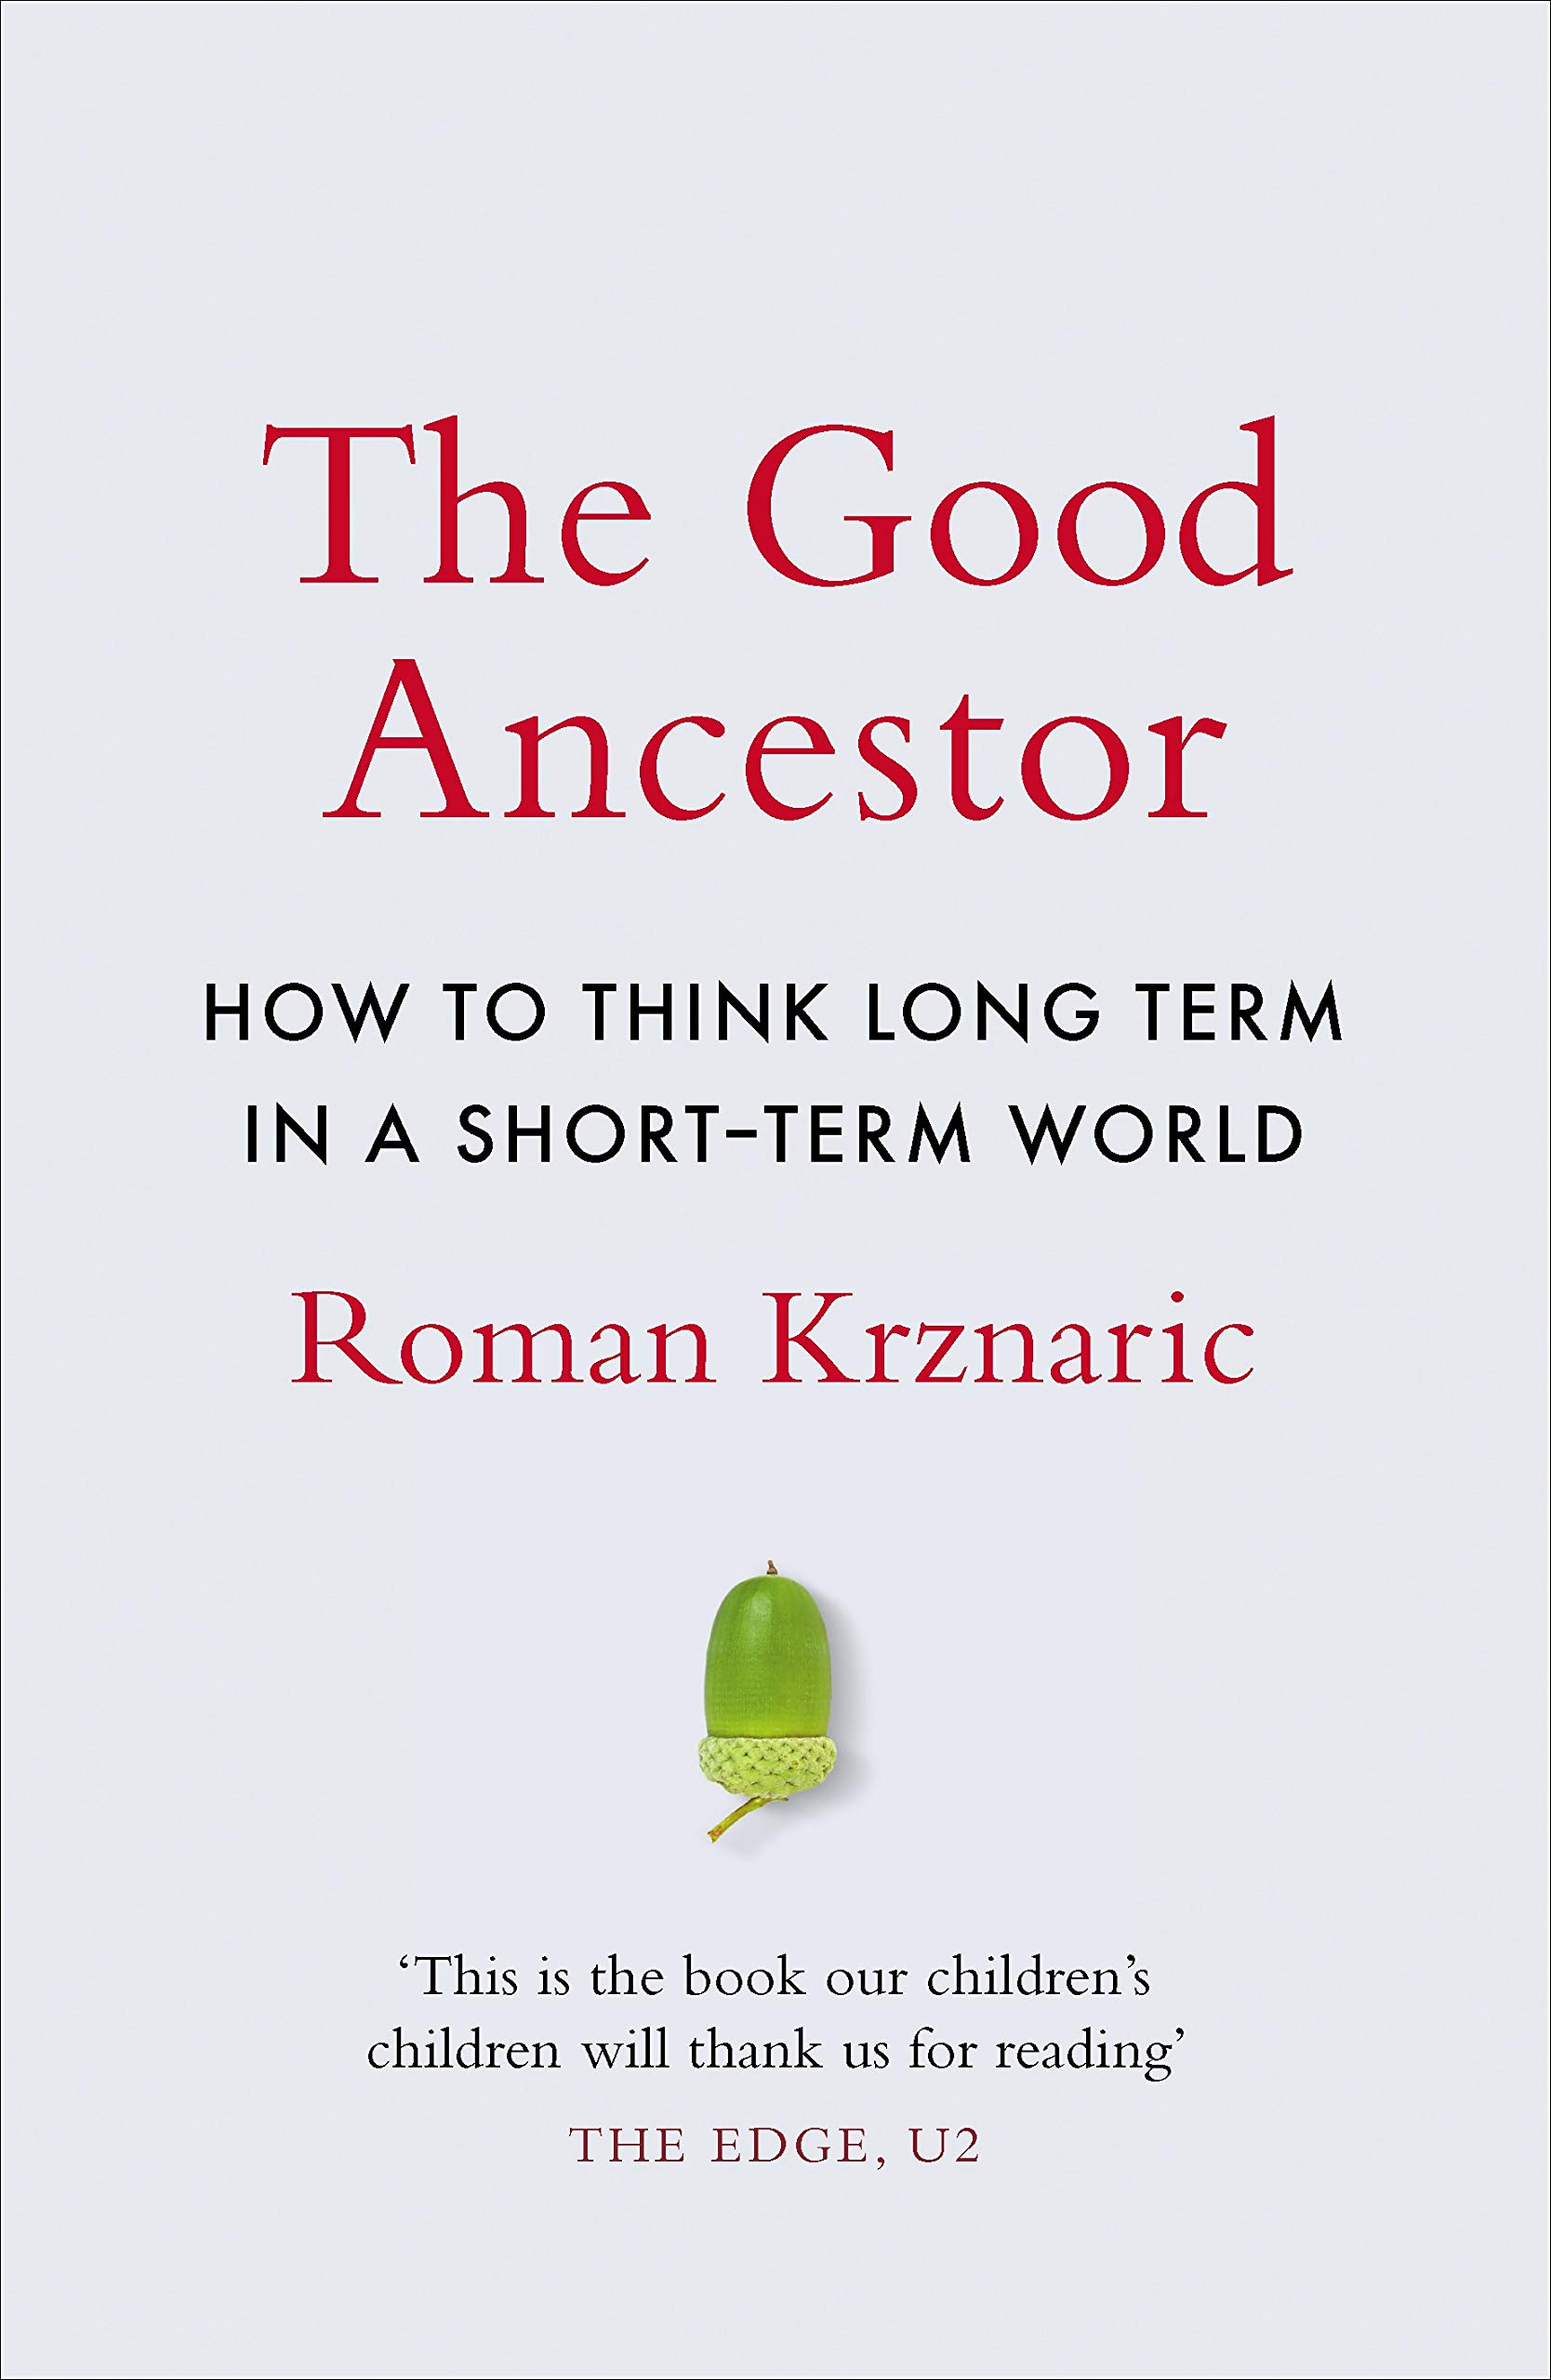 The Good Ancestor: How to Think Long Term in a Short-Term World